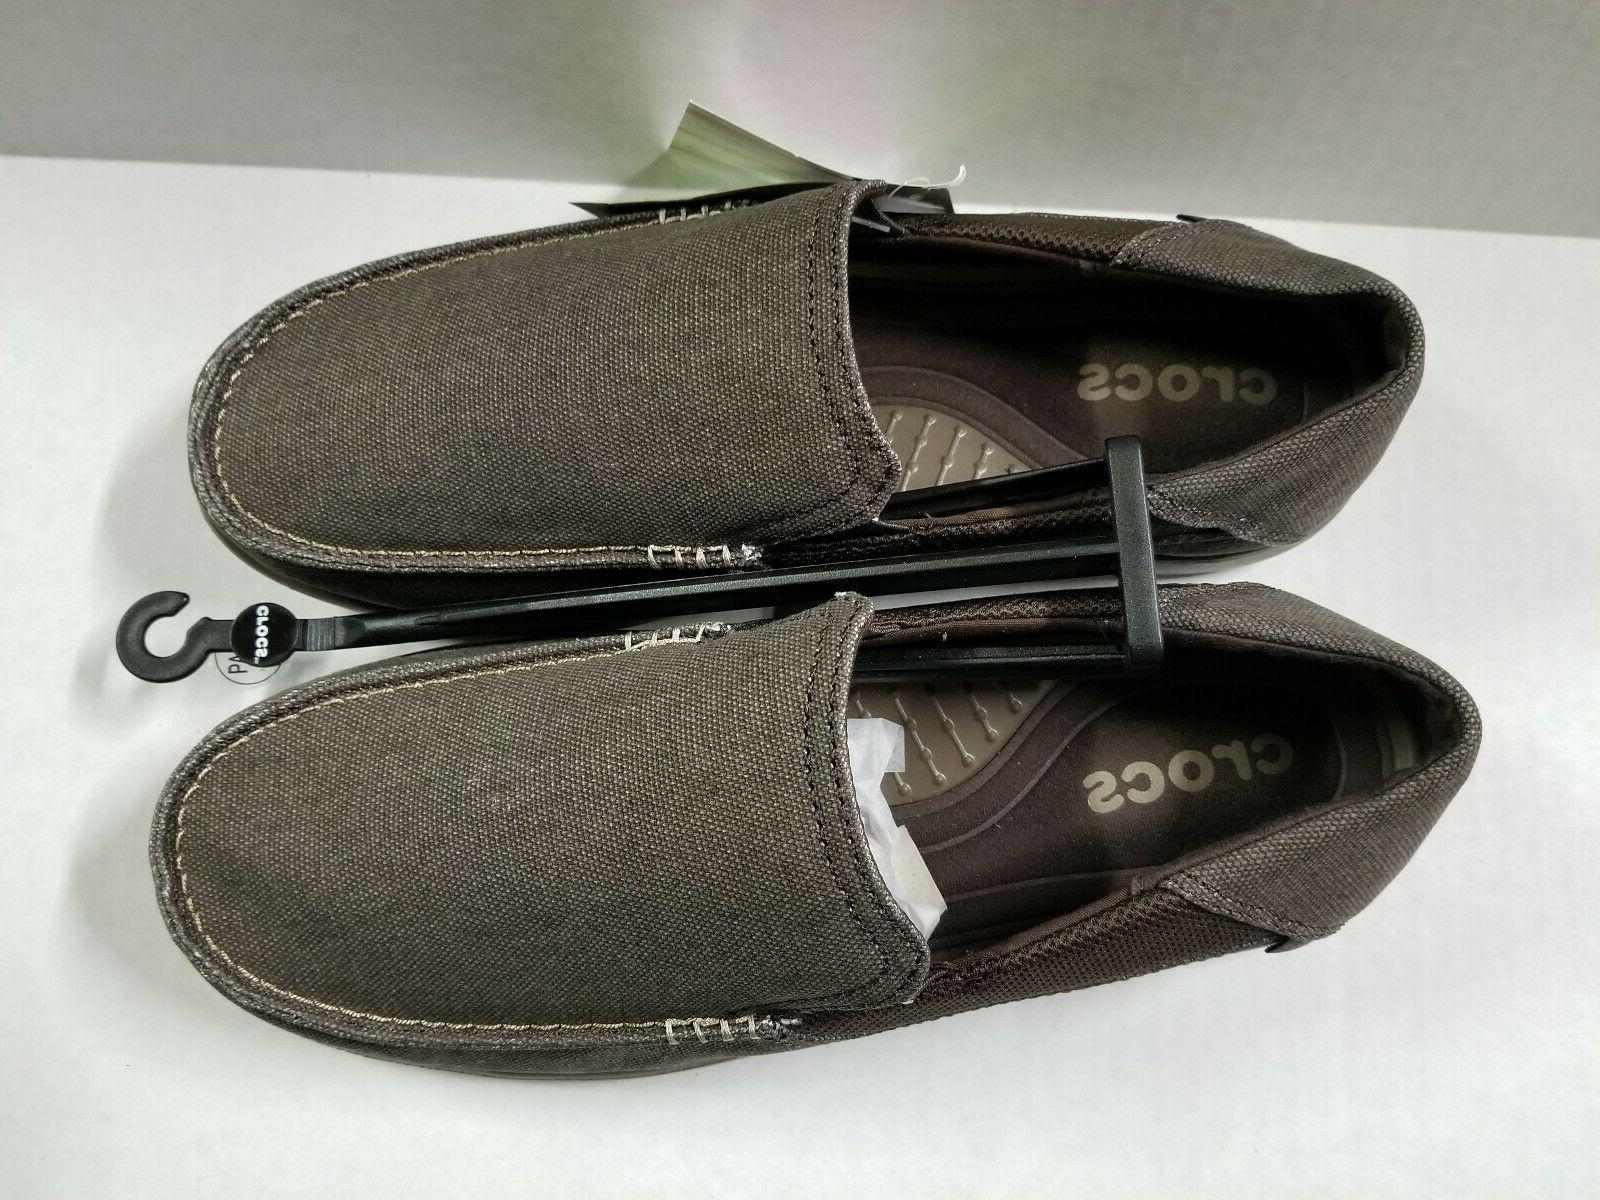 New Men's Crocs Cruz 2 Slip-ons Canvas Shoes SZ 9